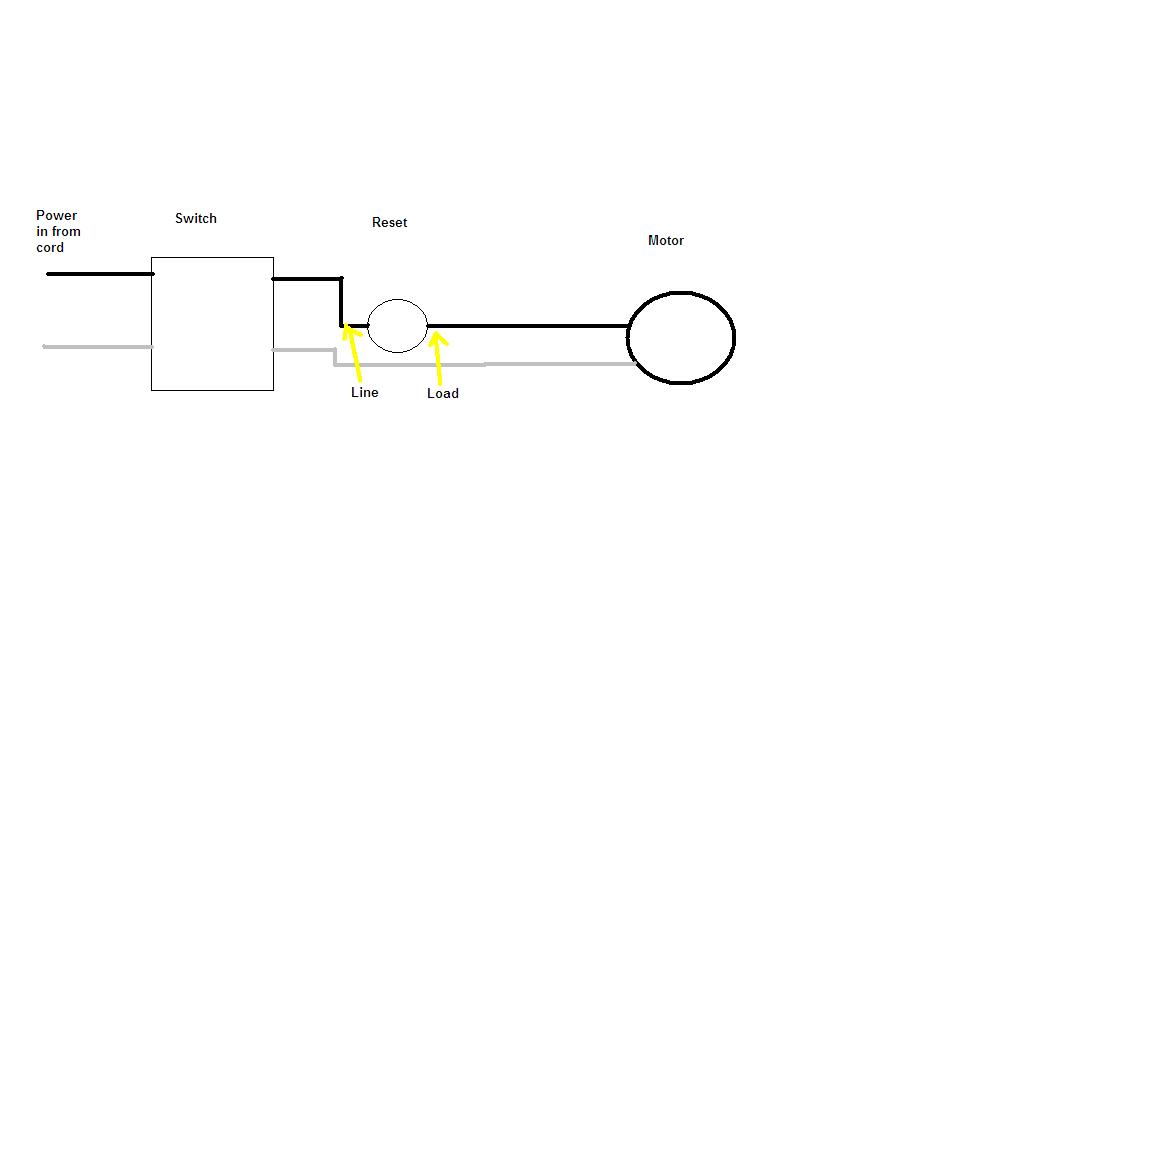 Im trying to install a reset button on my table saw ive got power made a quick diagram keyboard keysfo Images